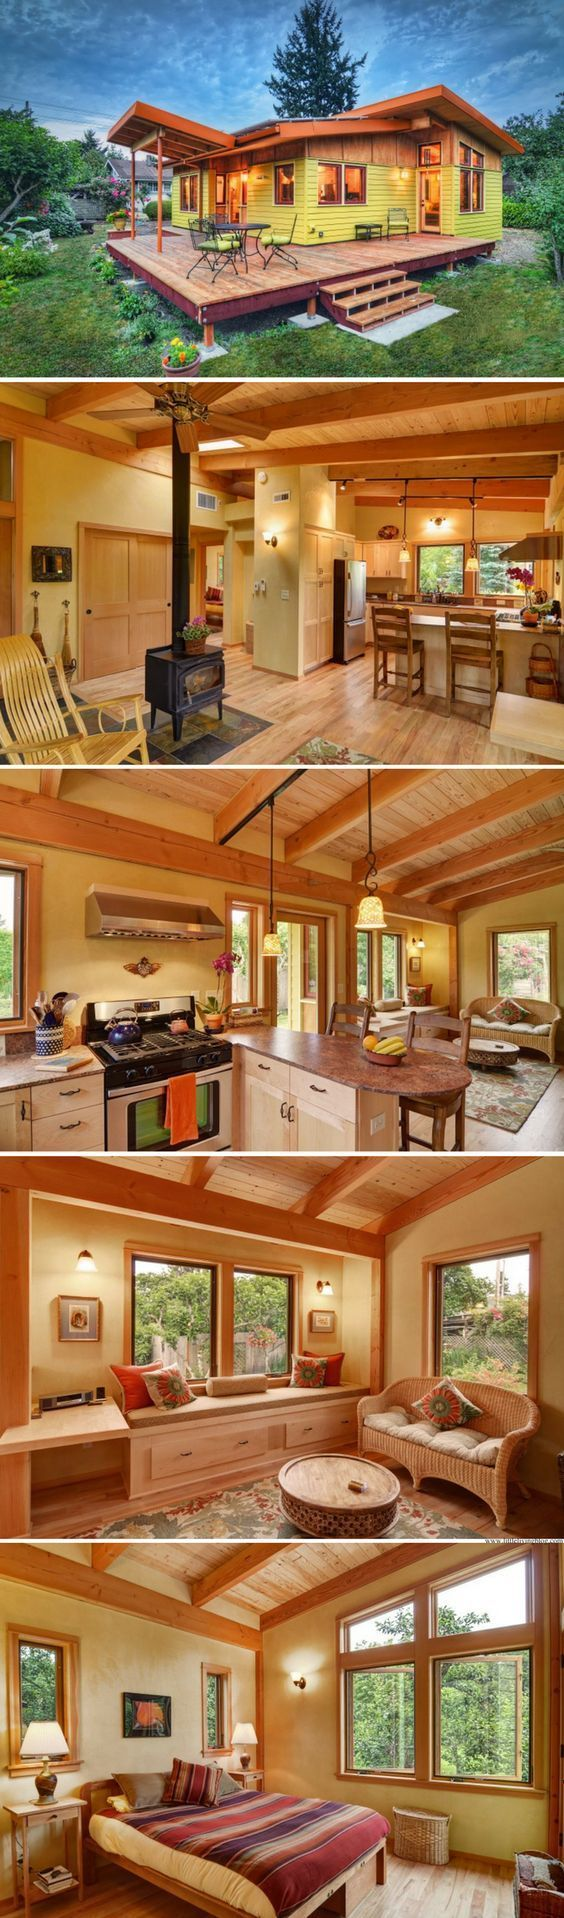 17 best ideas about 800 sq ft house on pinterest small - Interior home design for small houses ...